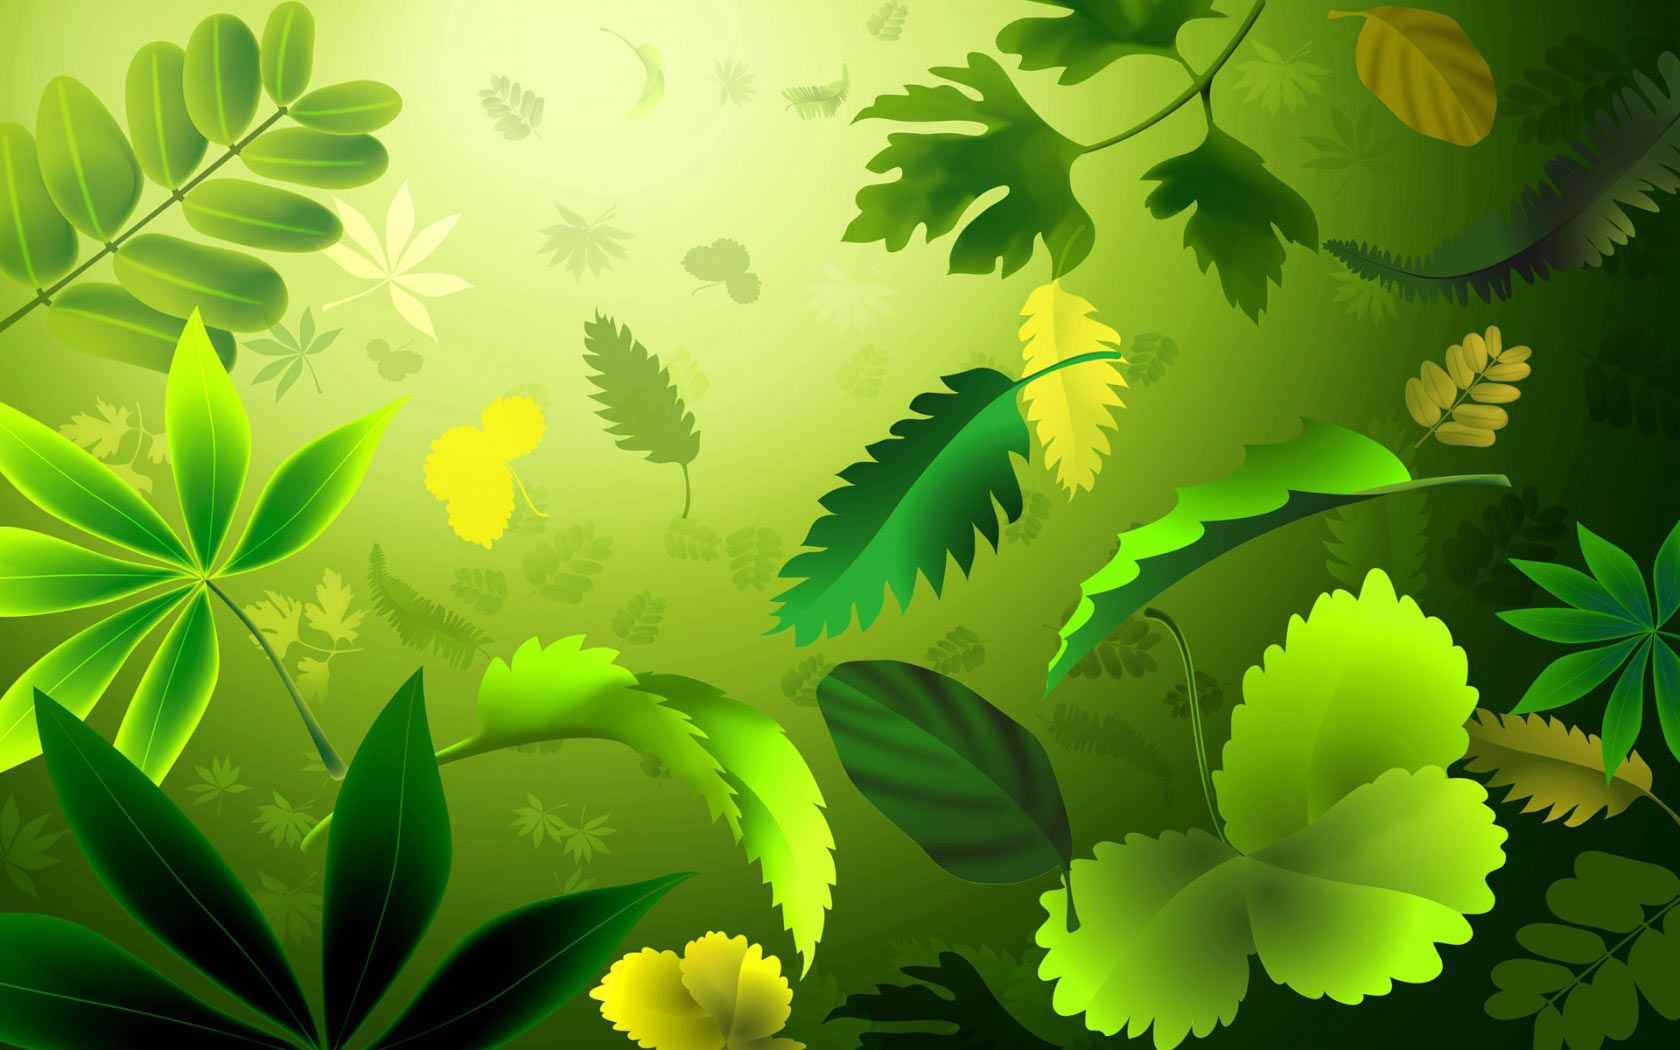 Wallpapers clipart graphic transparent stock Free Nature Clipart Background Desktop Wallpaper | Art | Green ... graphic transparent stock